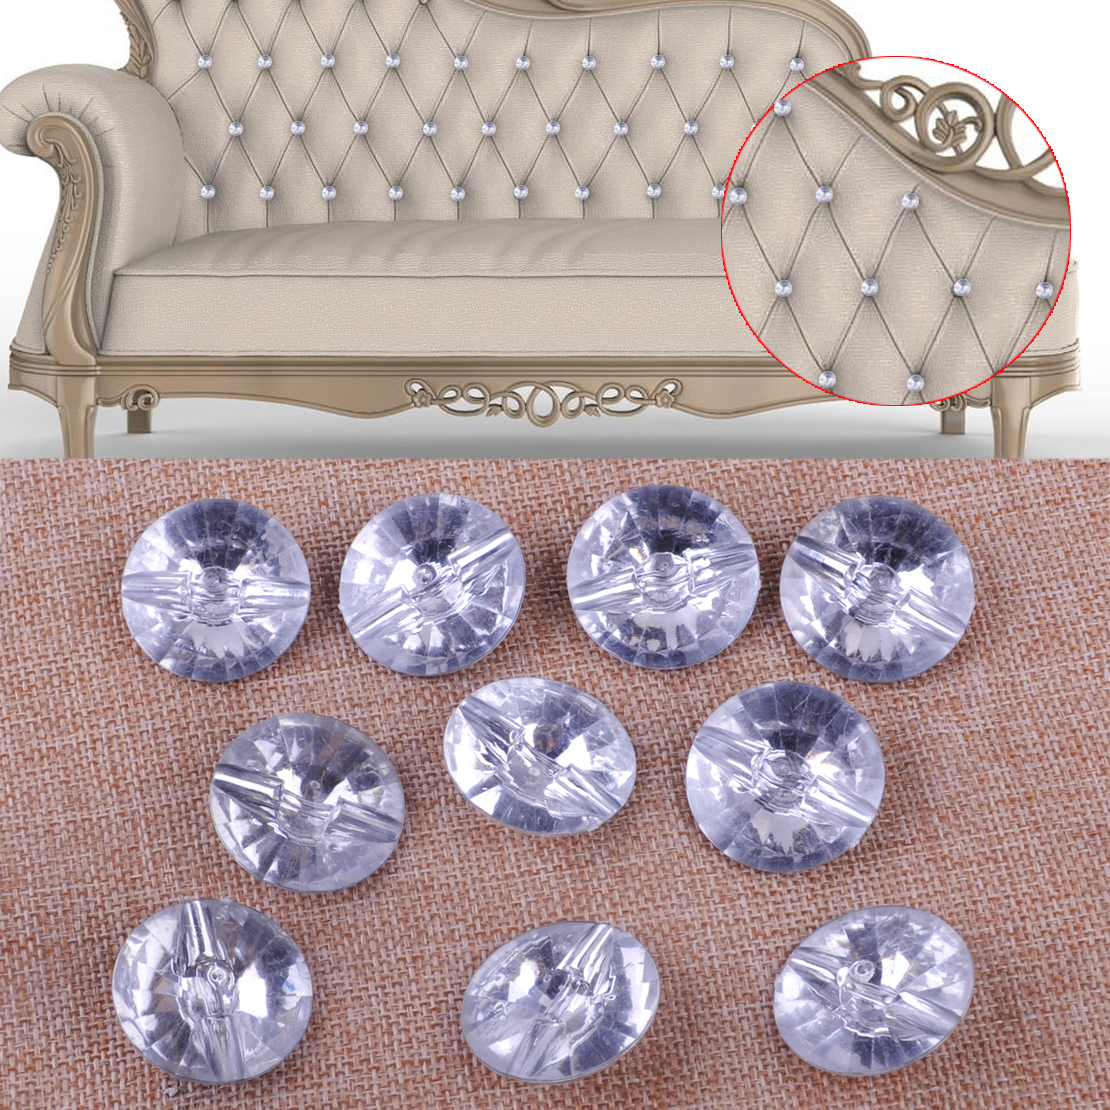 Sofa Upholstery Oman 10pcs 30mm Sparkly Diamond Crystal Gem Upholstery Nails Sew On